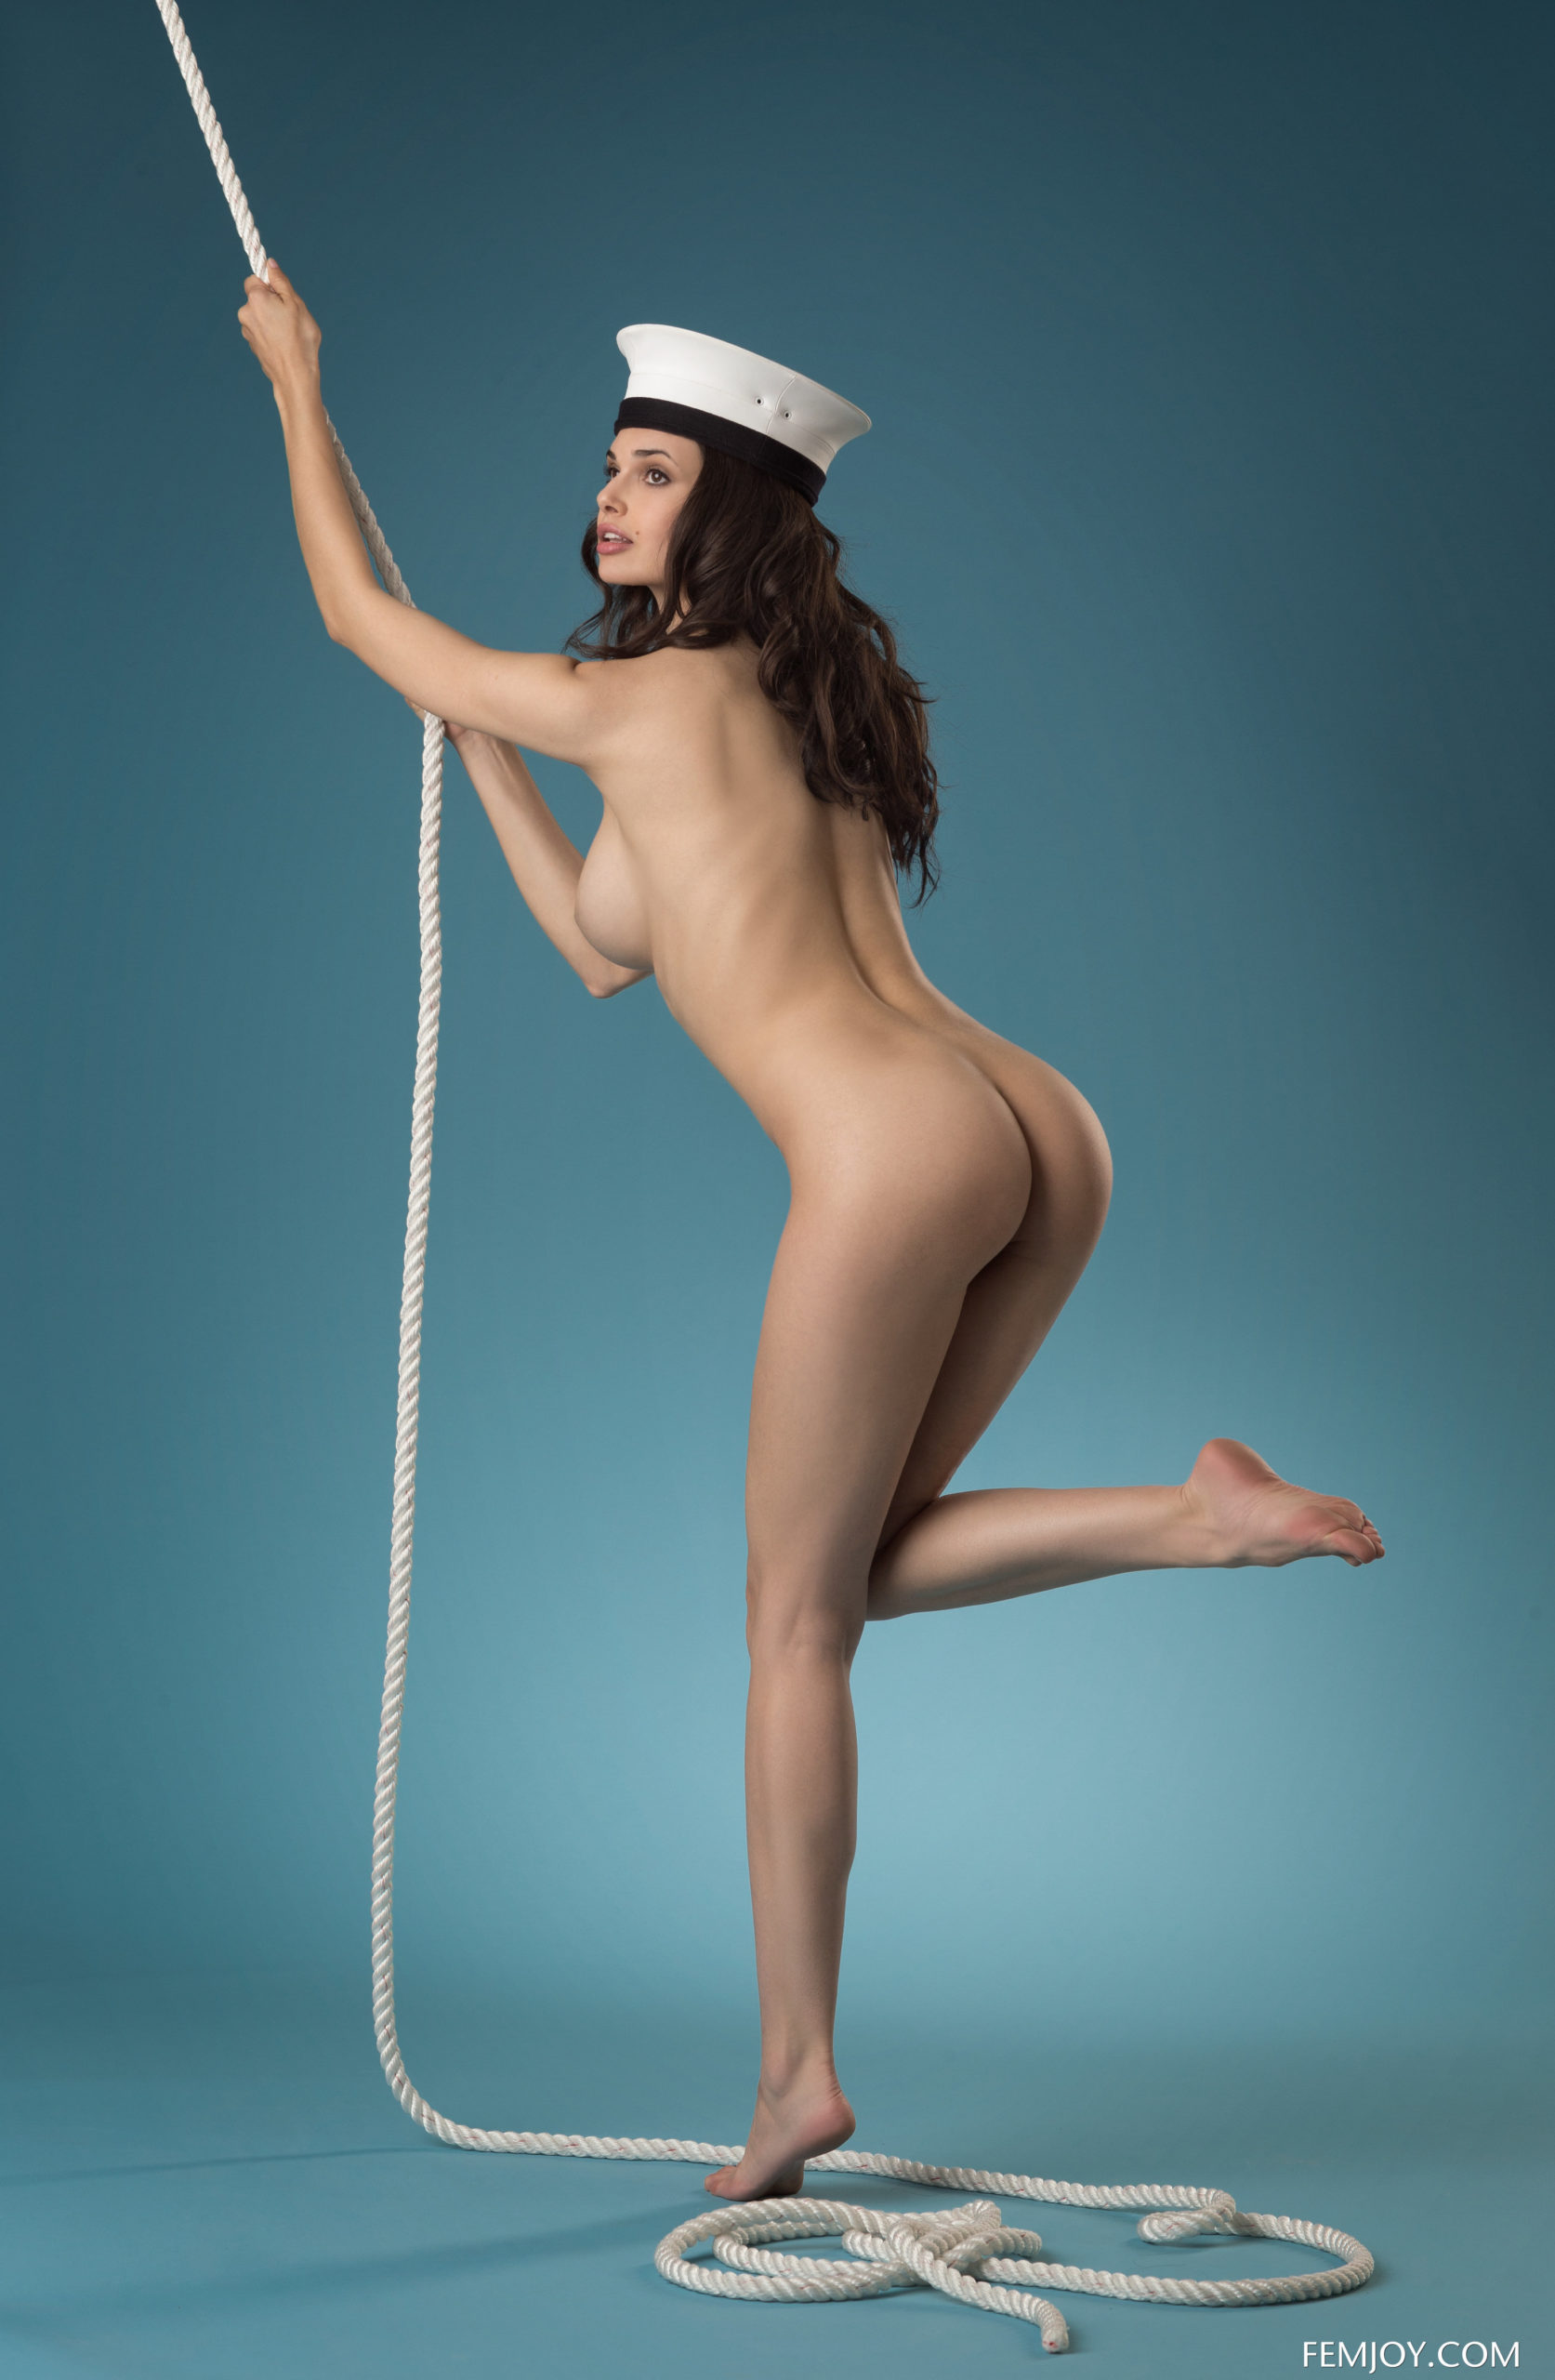 Zoi Gorman by Stefan Soell 'Throw Me A Rope' I (NSFW)